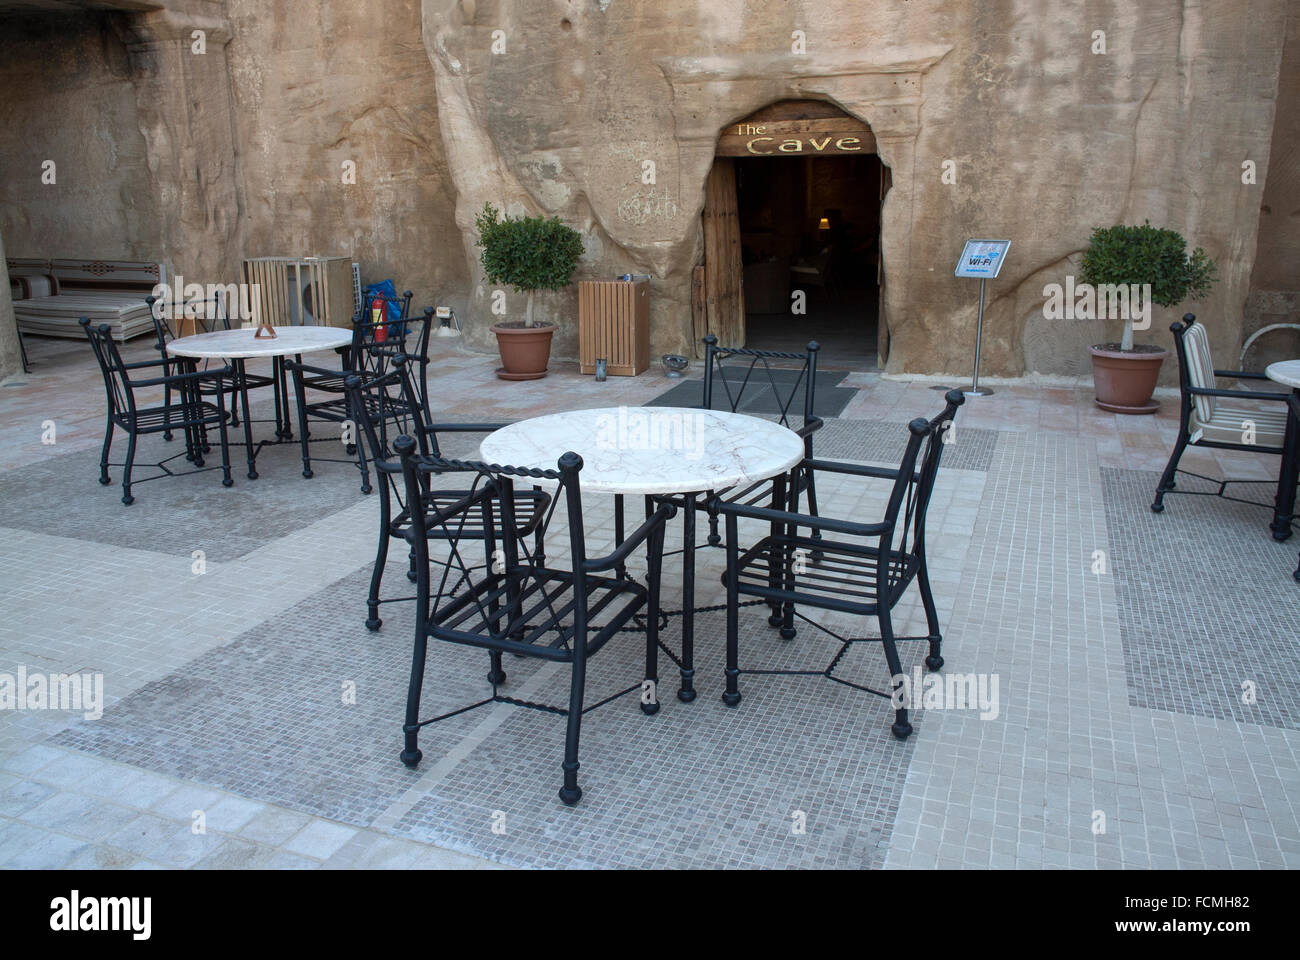 The oldest bar in the world 'The Cave Bar' in Wadi Musa at the entrance to Petra, Jordan - Stock Image